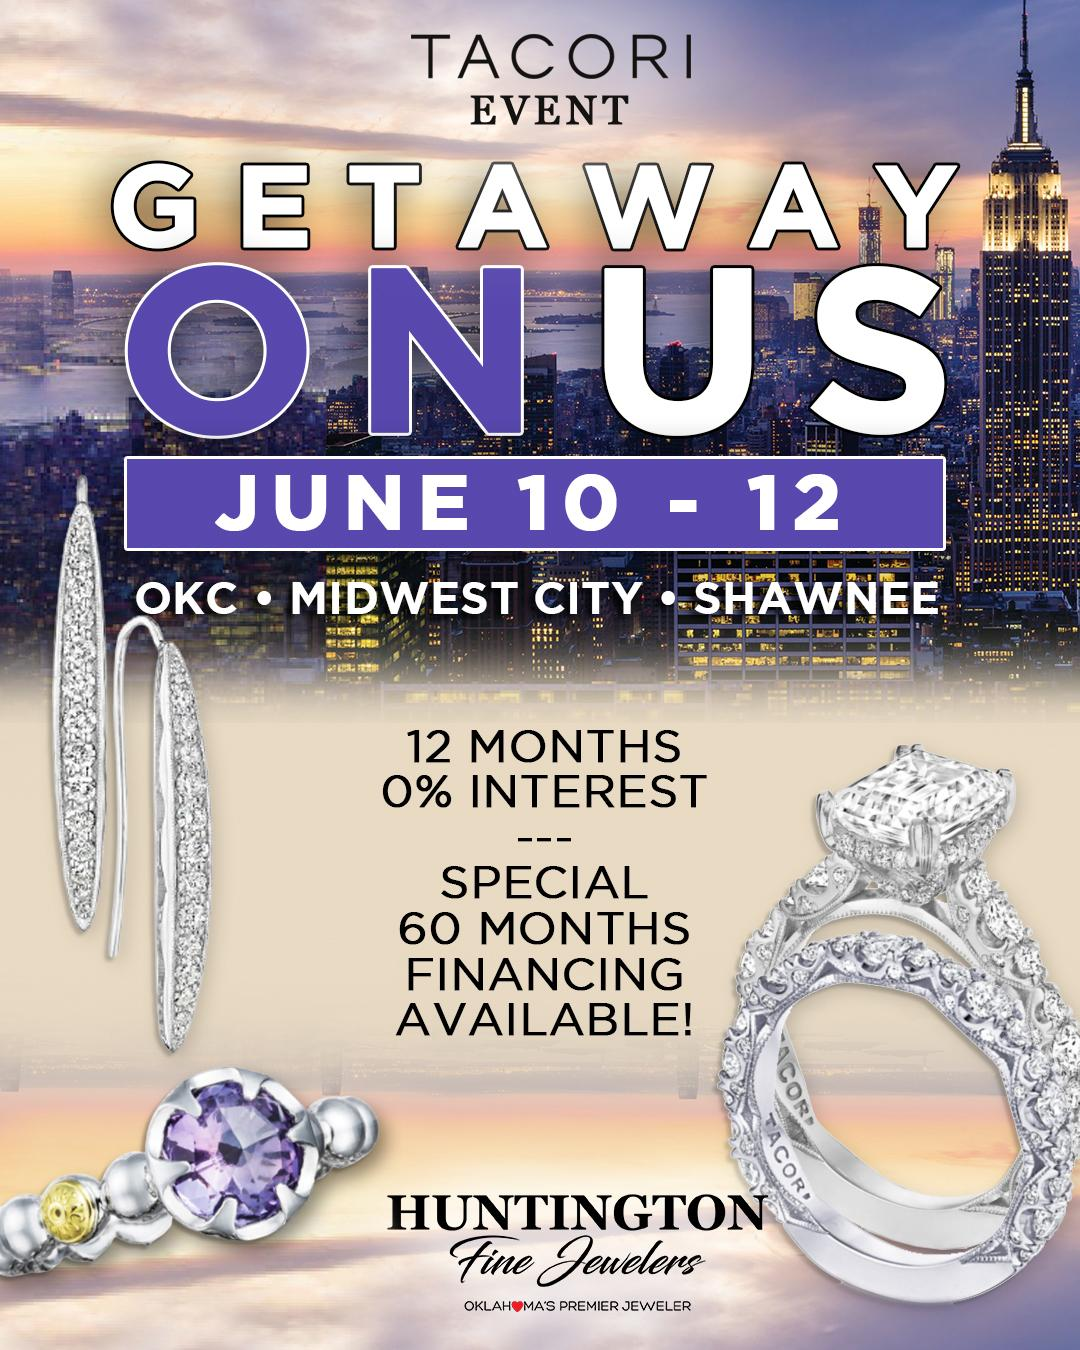 Take a Vacation With A Complimentary 7-Night Resort Pass from Huntington Fine Jewelers